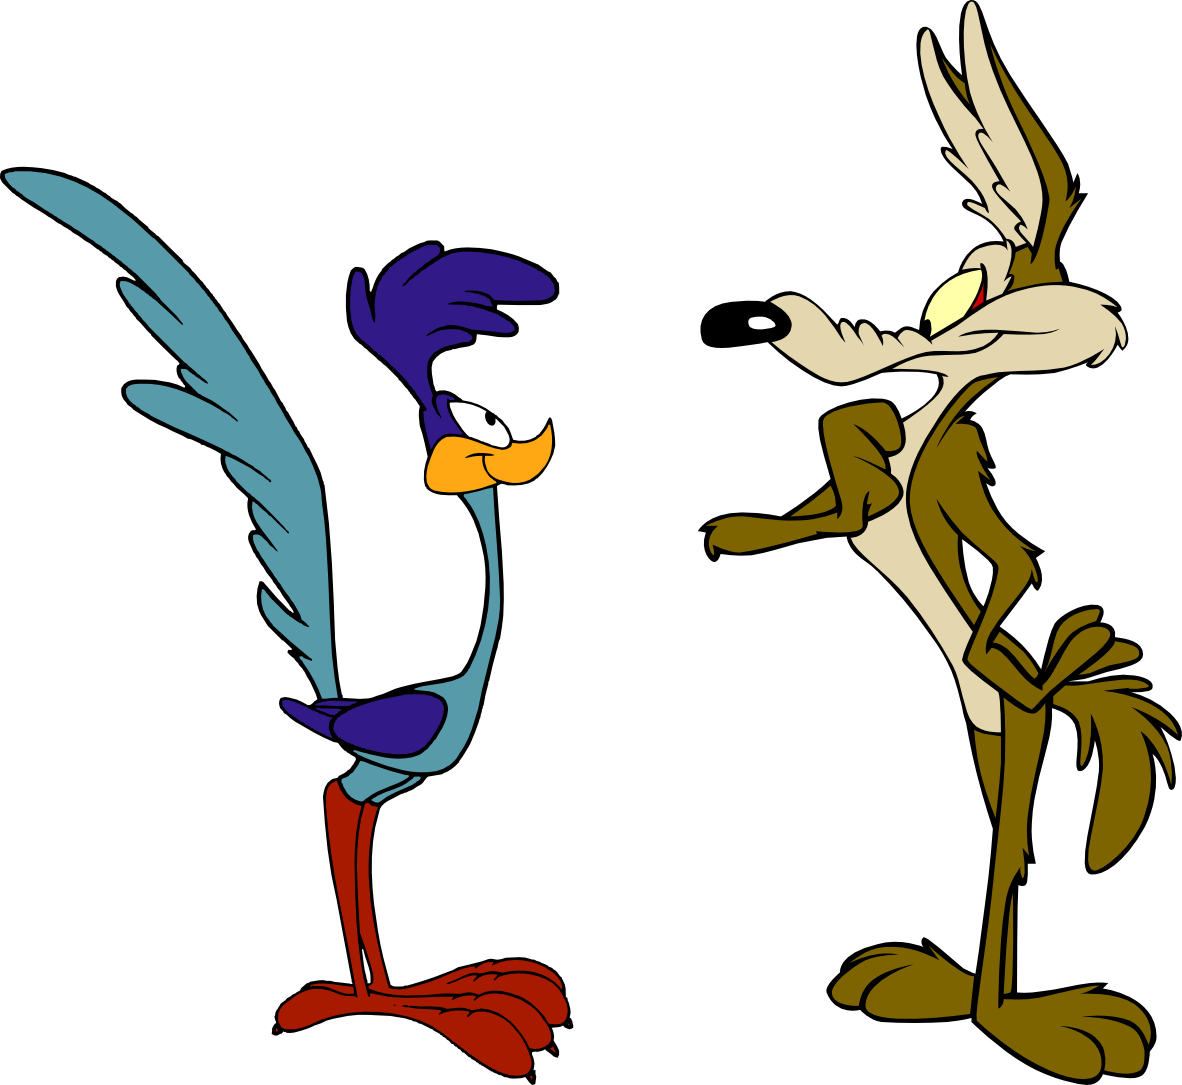 Rules for Wile E. Coyote and the Roadrunner.